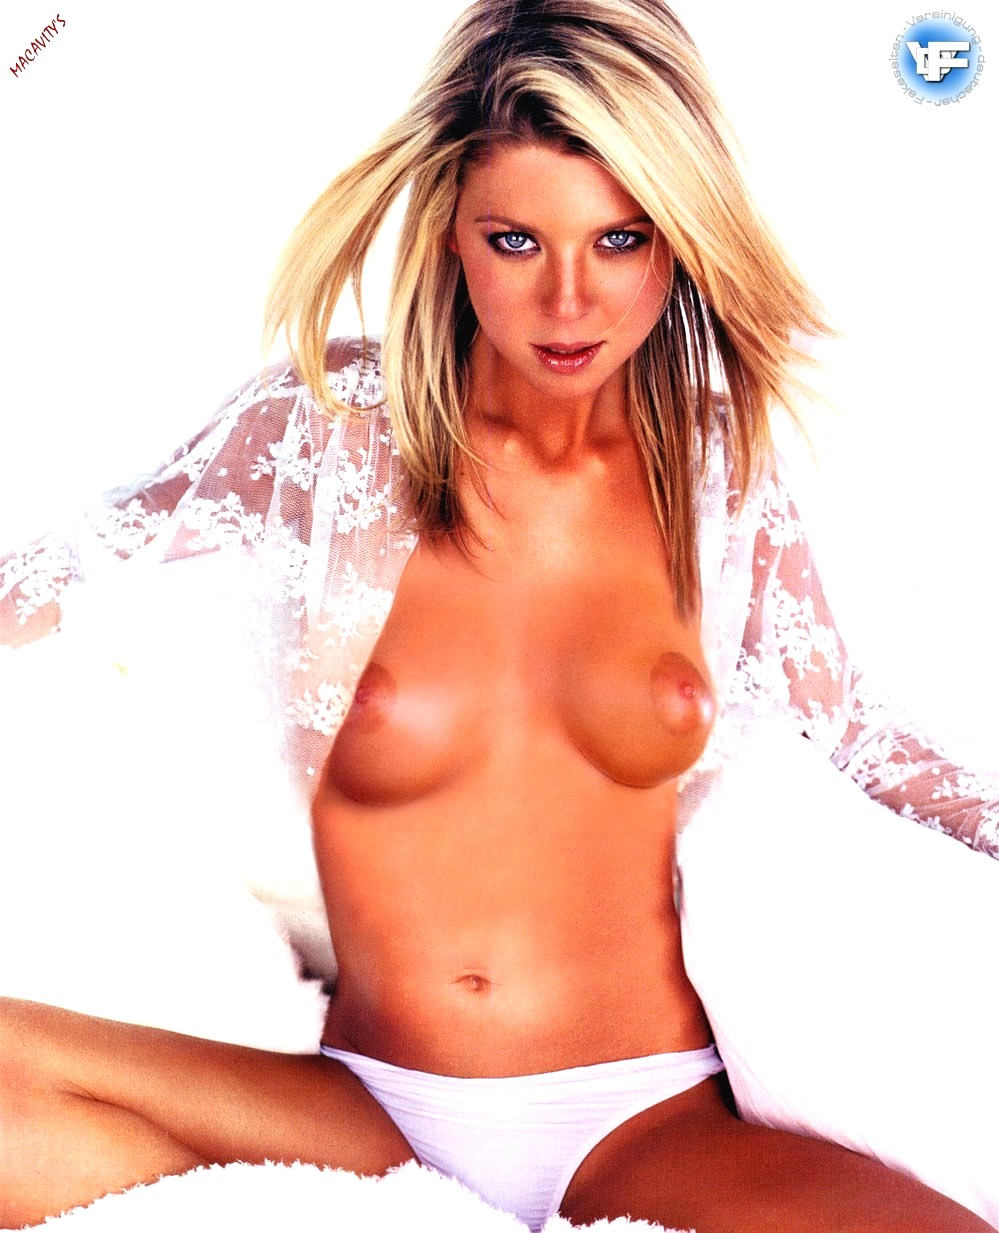 Tara reid naked sexy — photo 7